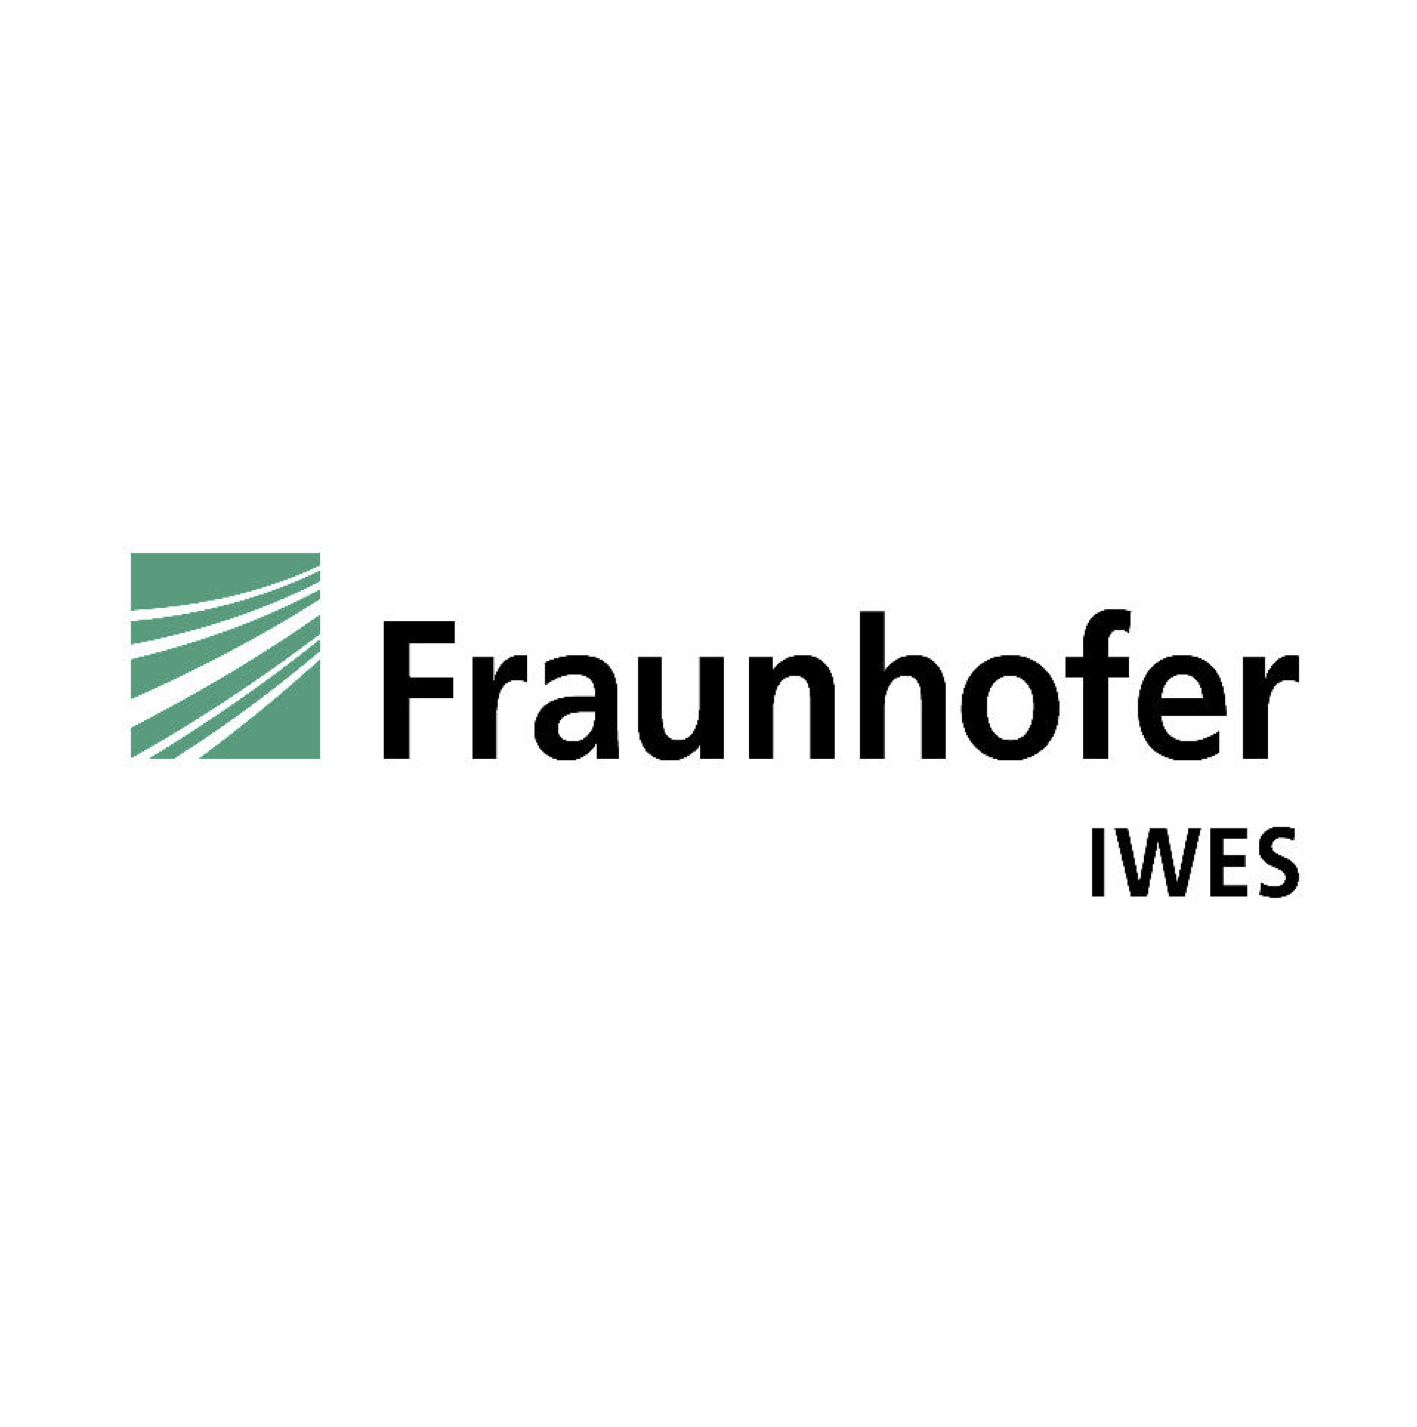 Faunhofer_iwes sq